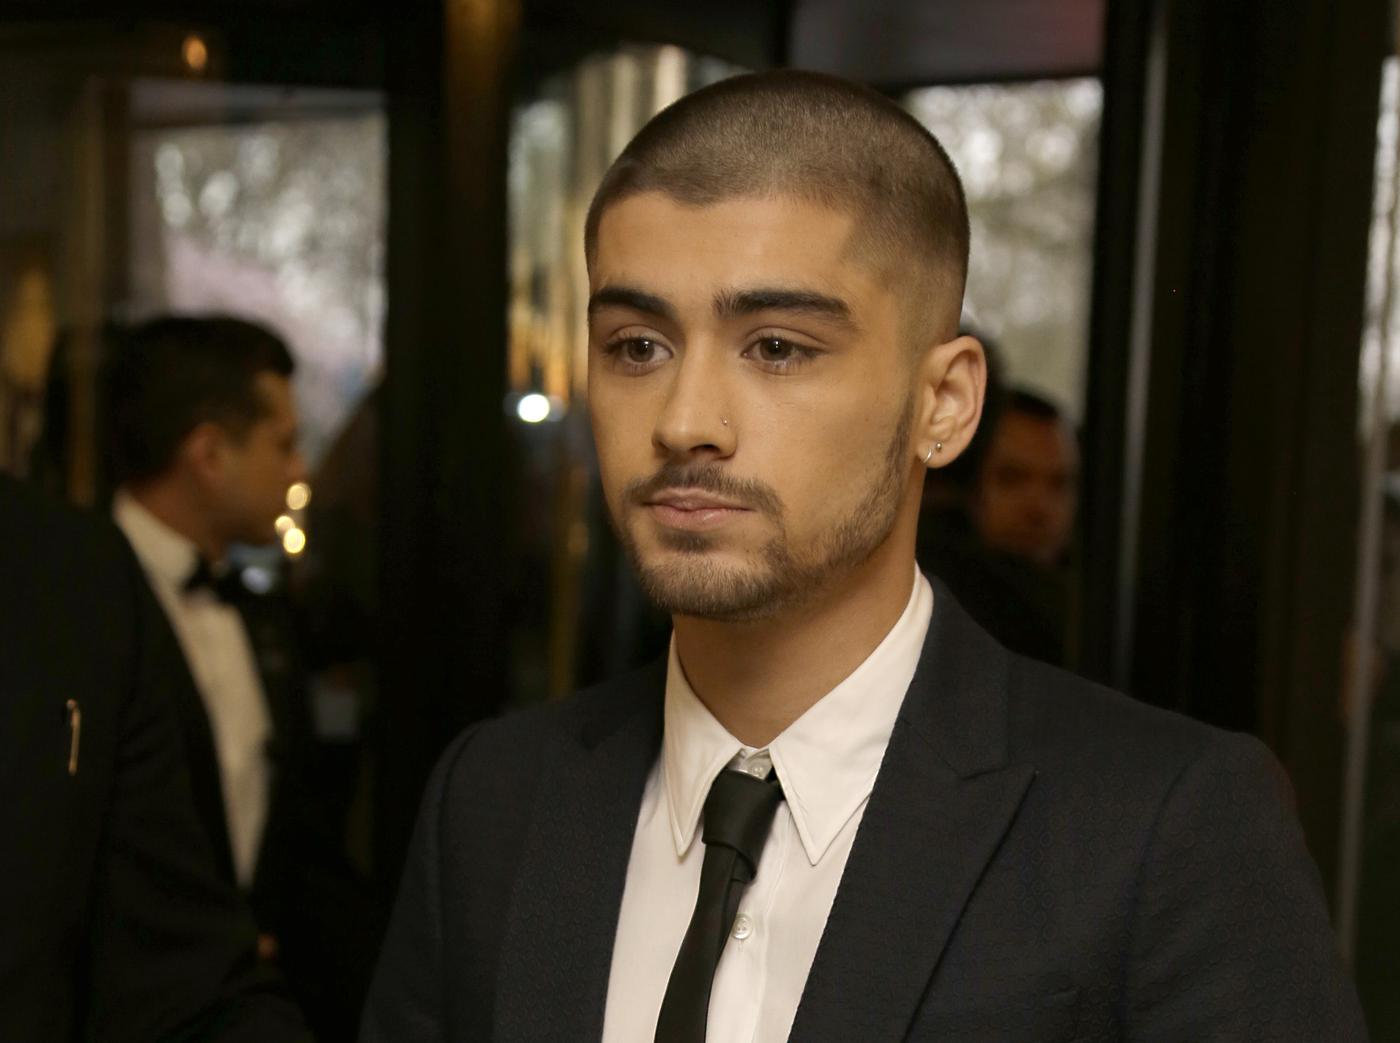 Zayn Malik poses for photographers upon arrival at The Asian Awards in central London, Friday, 17 April, 2015. (Photo by Joel Ryan/Invision/AP) Joel Ryan/Invision/AP